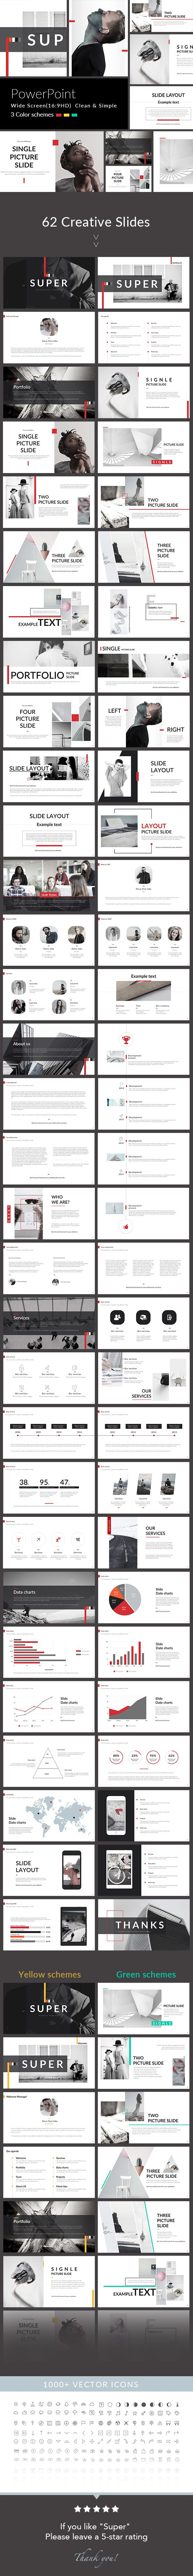 200 best Powerpoint images on Pinterest | Presentation design, Page ...